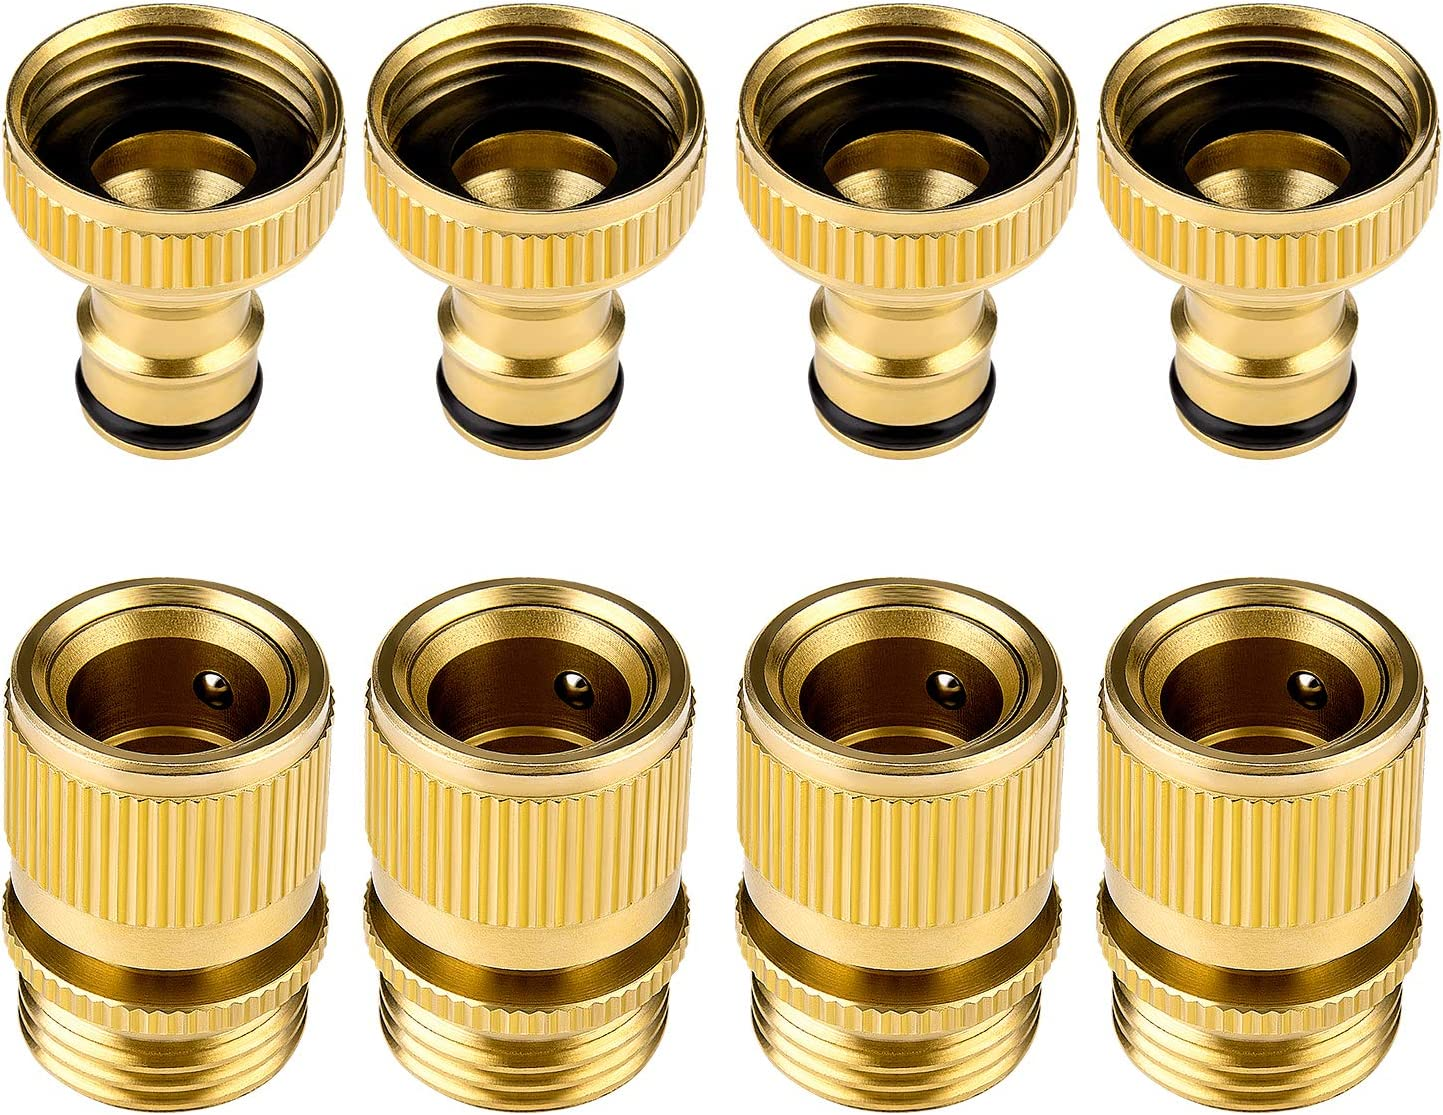 Awpeye Hose Connector ,Hose Quick Connector for Garden, 4Sets 8PCS 4 Female s + 4 Male 3/4 inch Solid Brass Water Connectors